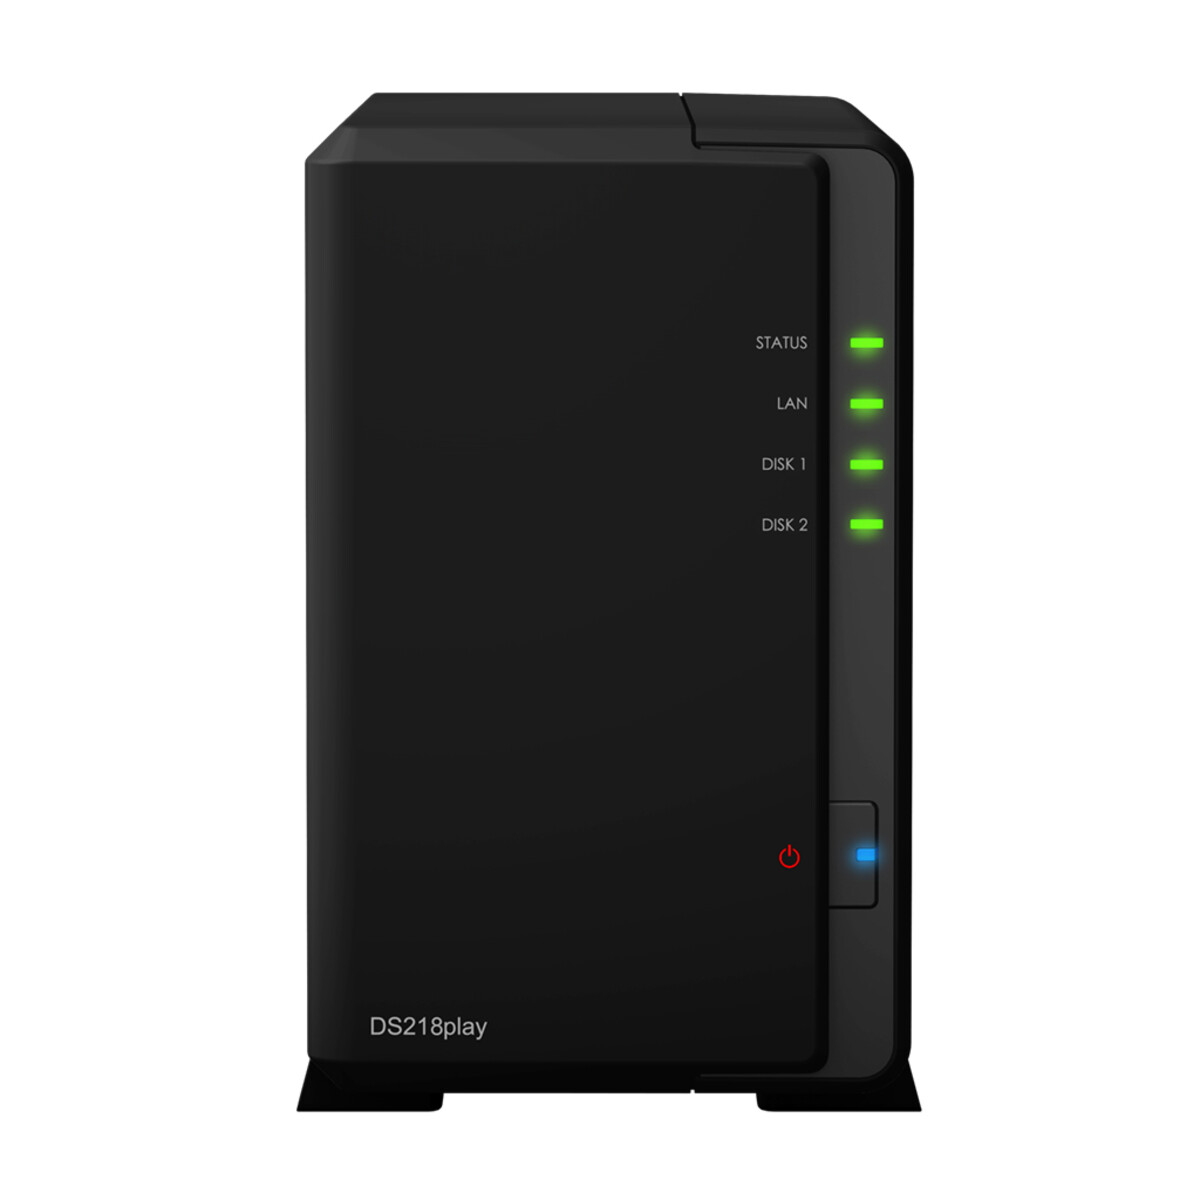 4711174722884-synology-diskstation-ds218play-rtd1296-collegamento-ethernet-lan-compatta-nero-n